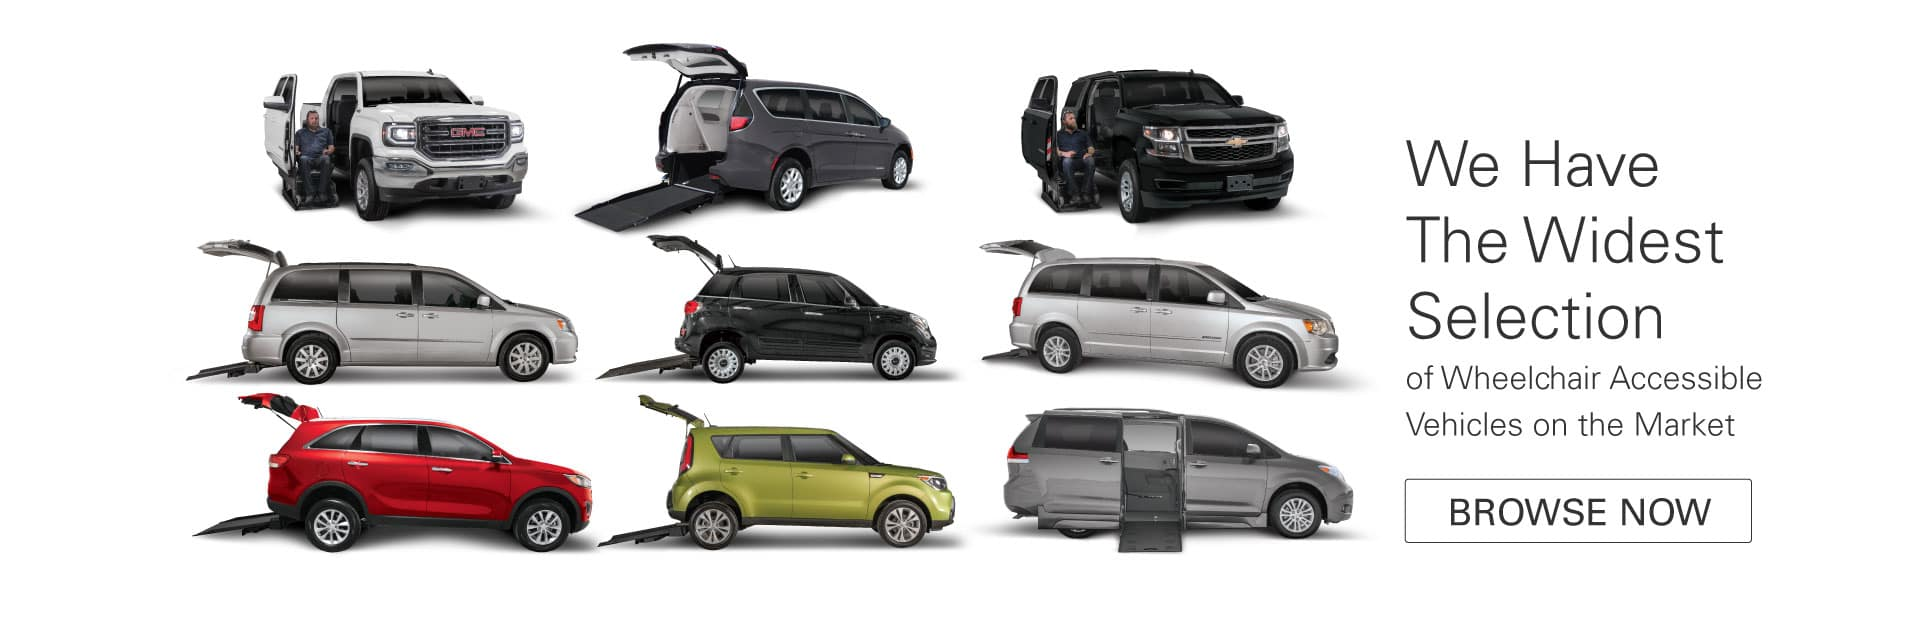 We Have the Widest Selection of Wheelchair Accessible Vehicles on the Market